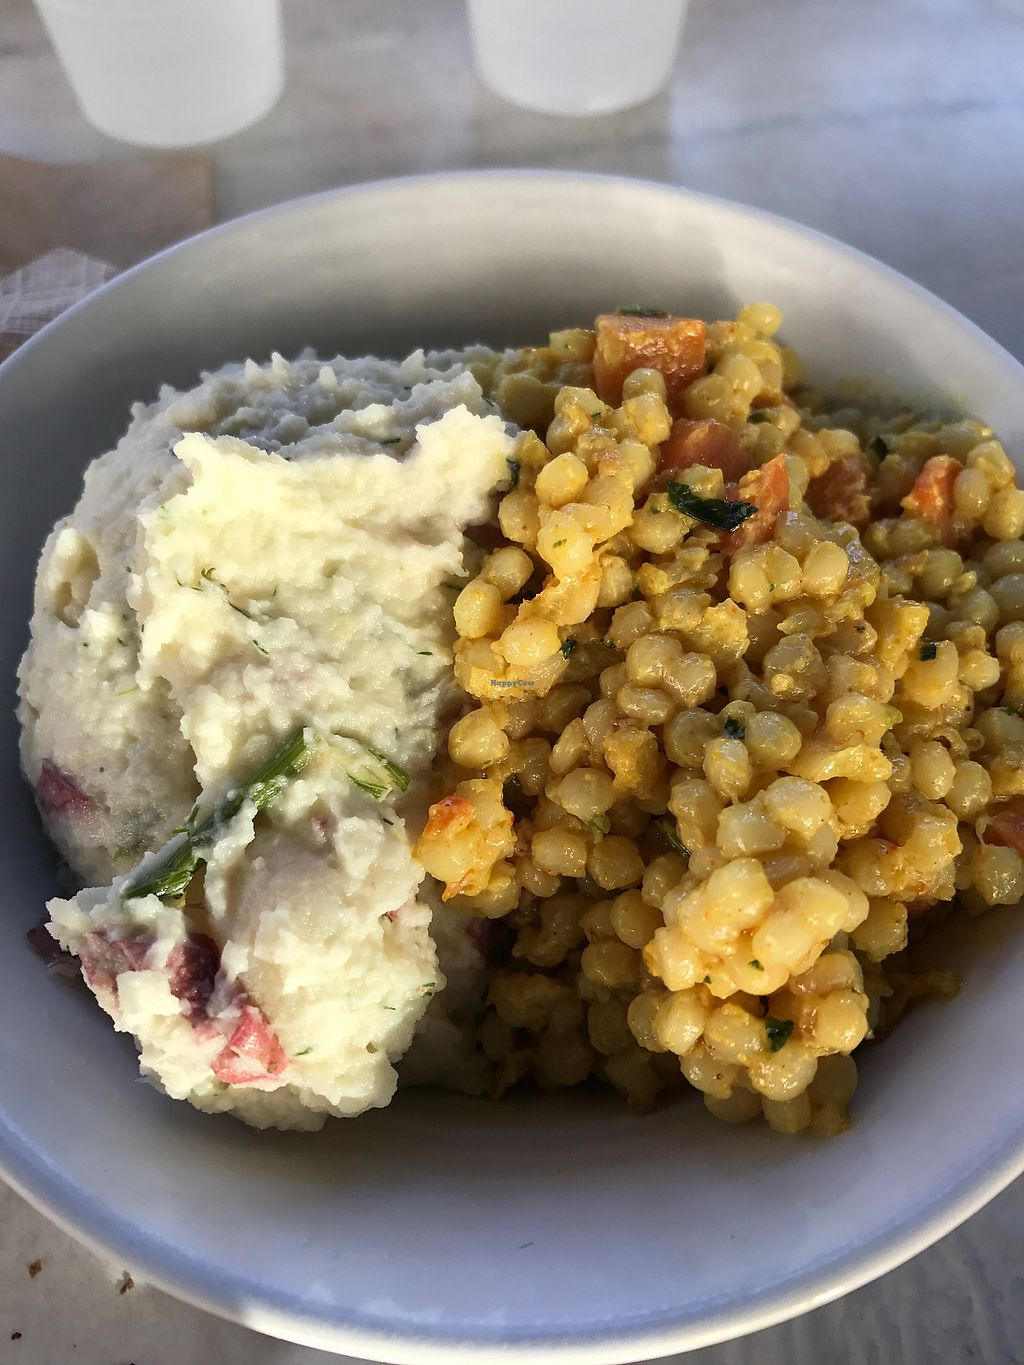 """Photo of Mendocino Farms  by <a href=""""/members/profile/sjberrest"""">sjberrest</a> <br/>1/2 Potato Salad 1/2 Curried Couscous  <br/> June 28, 2017  - <a href='/contact/abuse/image/81282/274198'>Report</a>"""